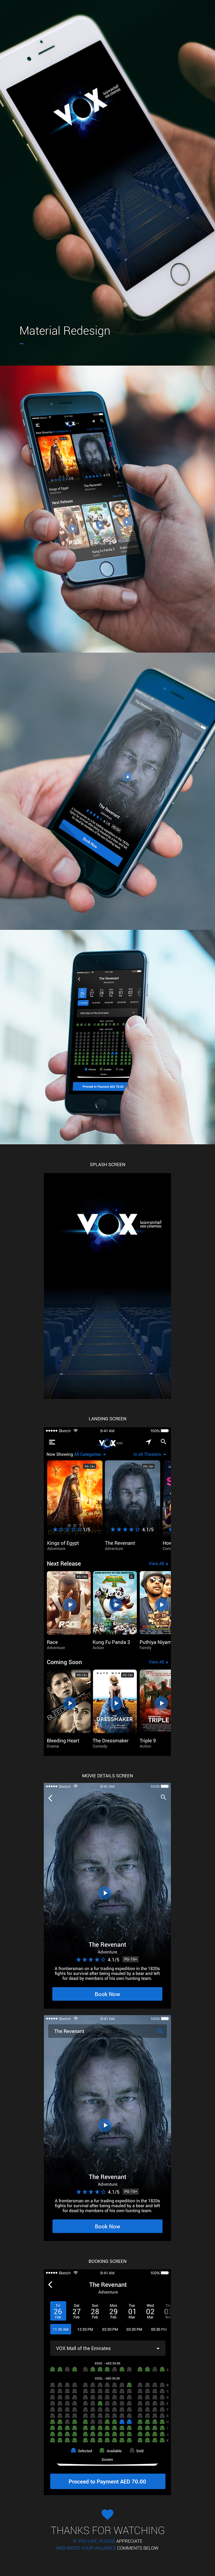 Vox Cinemas iOS App - Concept Redesign